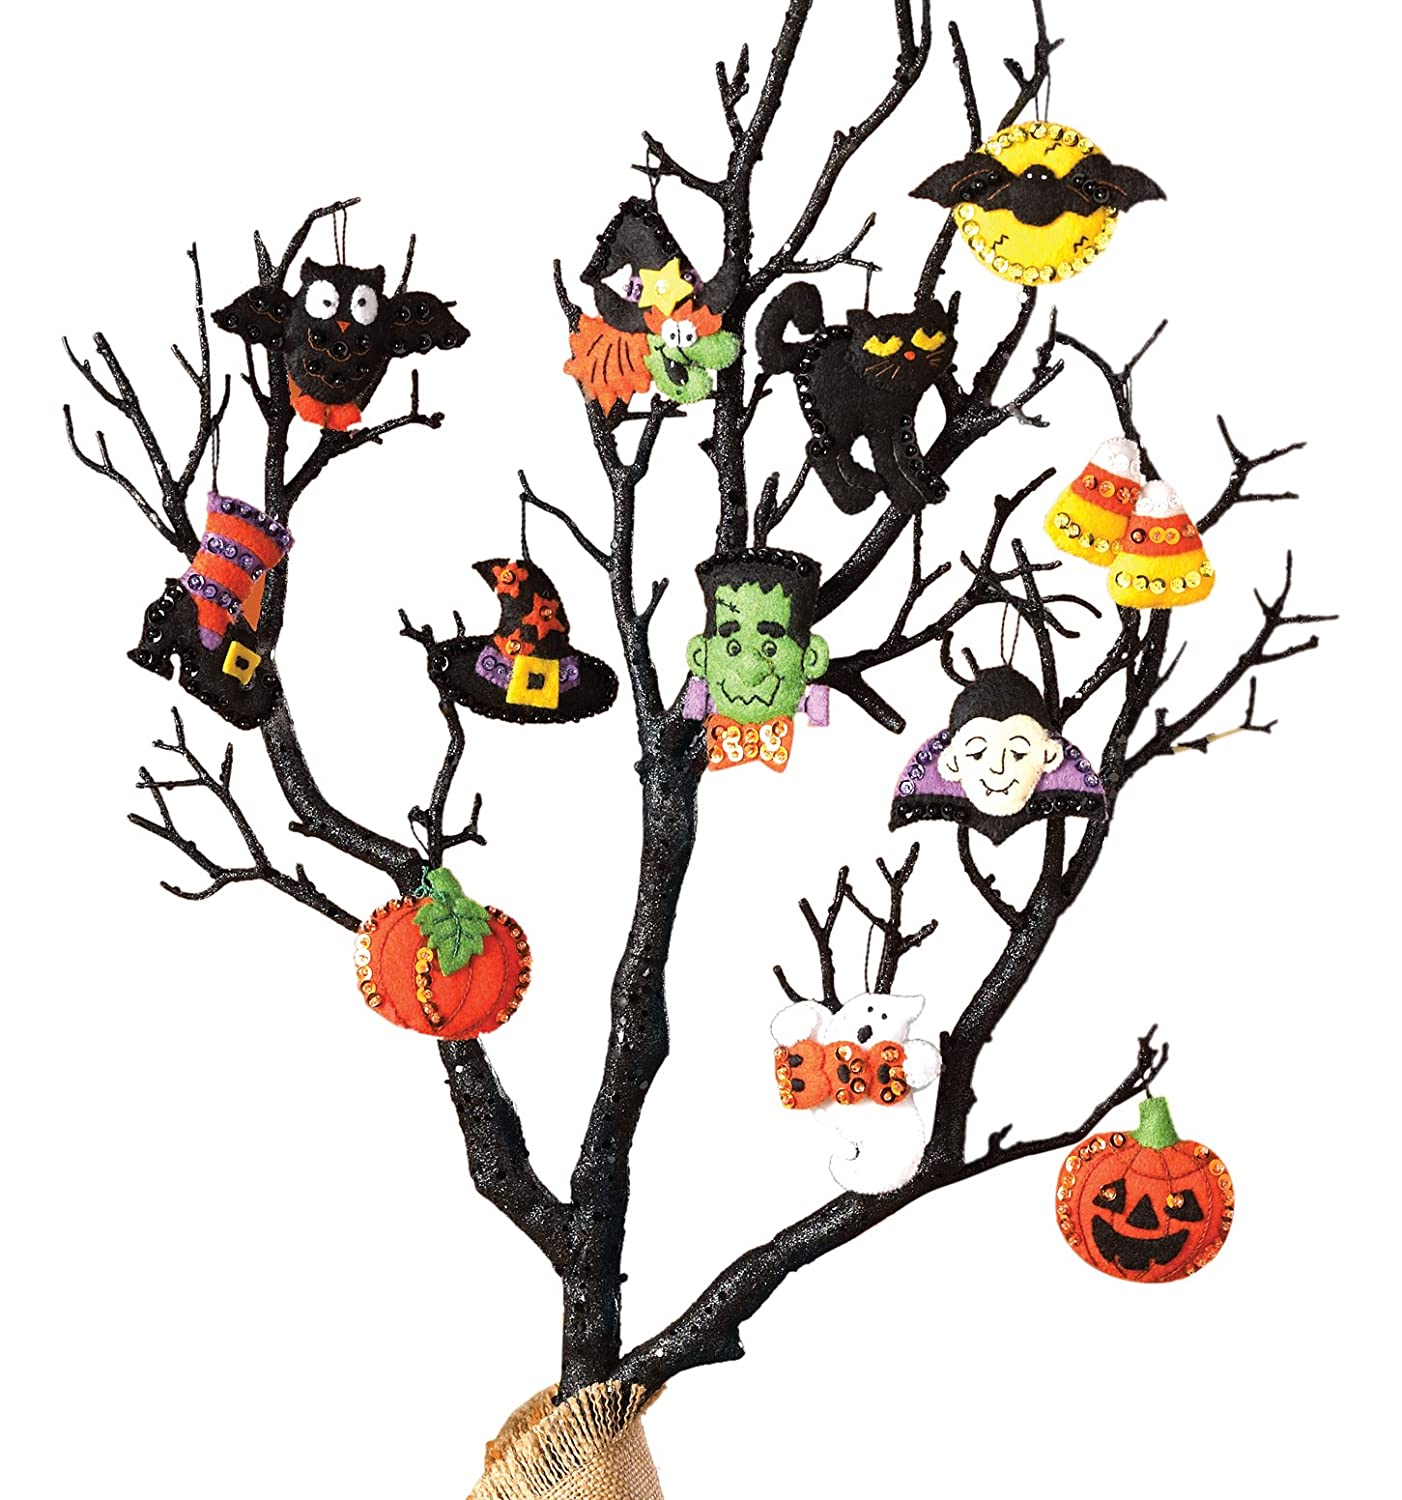 Bucilla 86430 Halloween Felt Applique Ornaments Kit Size 2 by 2.5 Inch, Set of 12